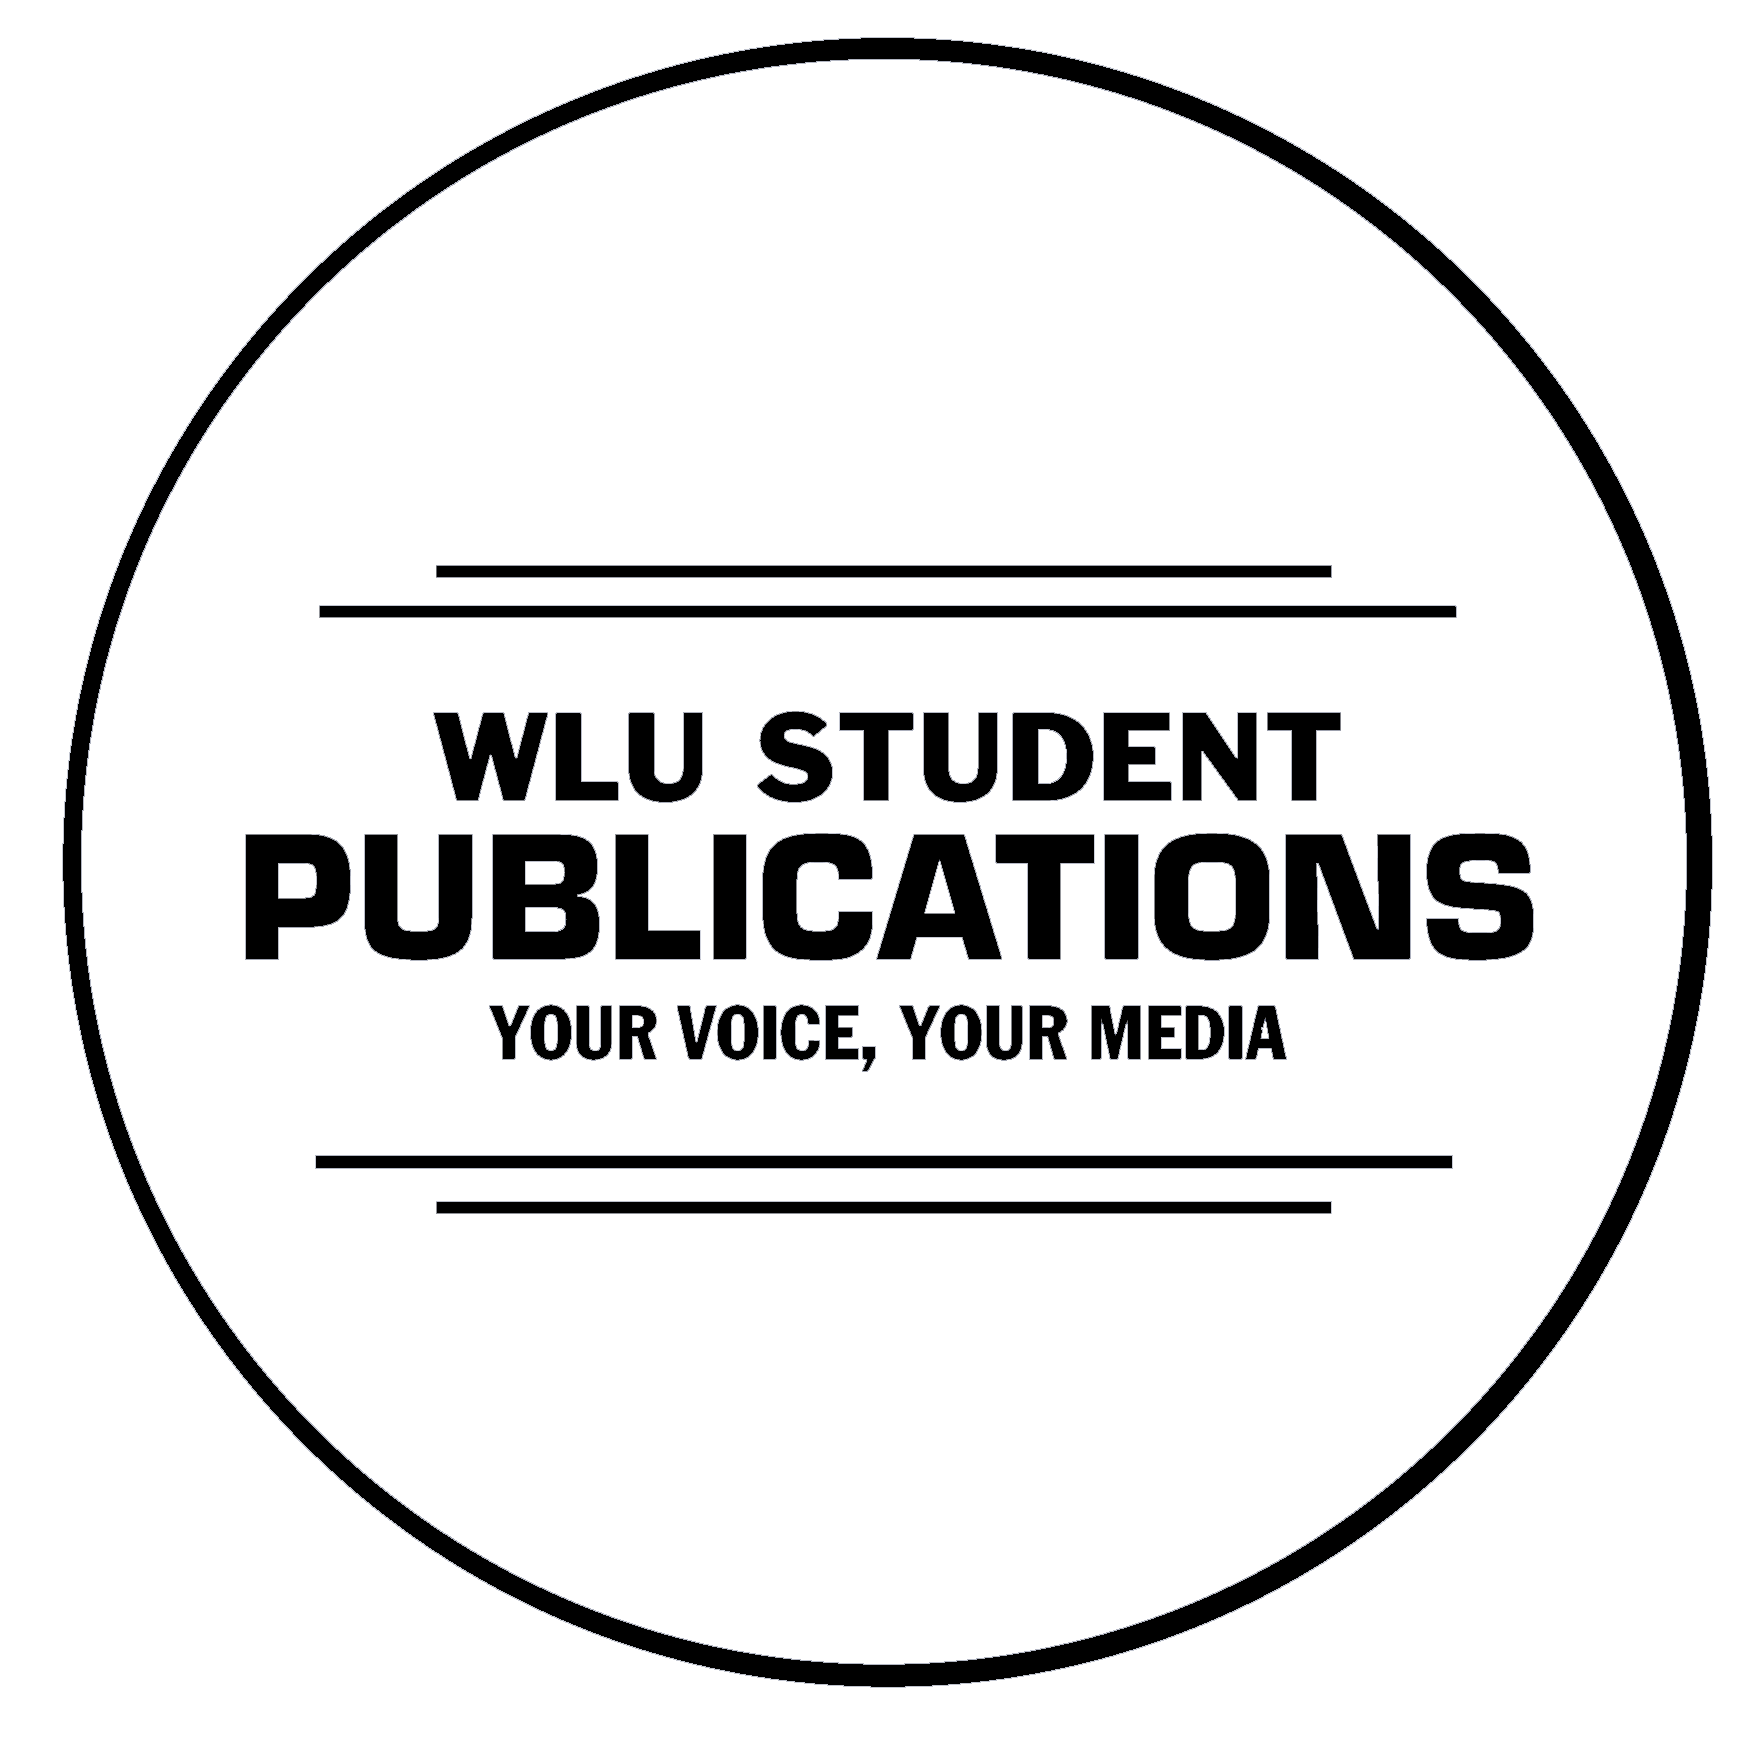 Wilfrid Laurier University Student Publications President and Publisher platforms